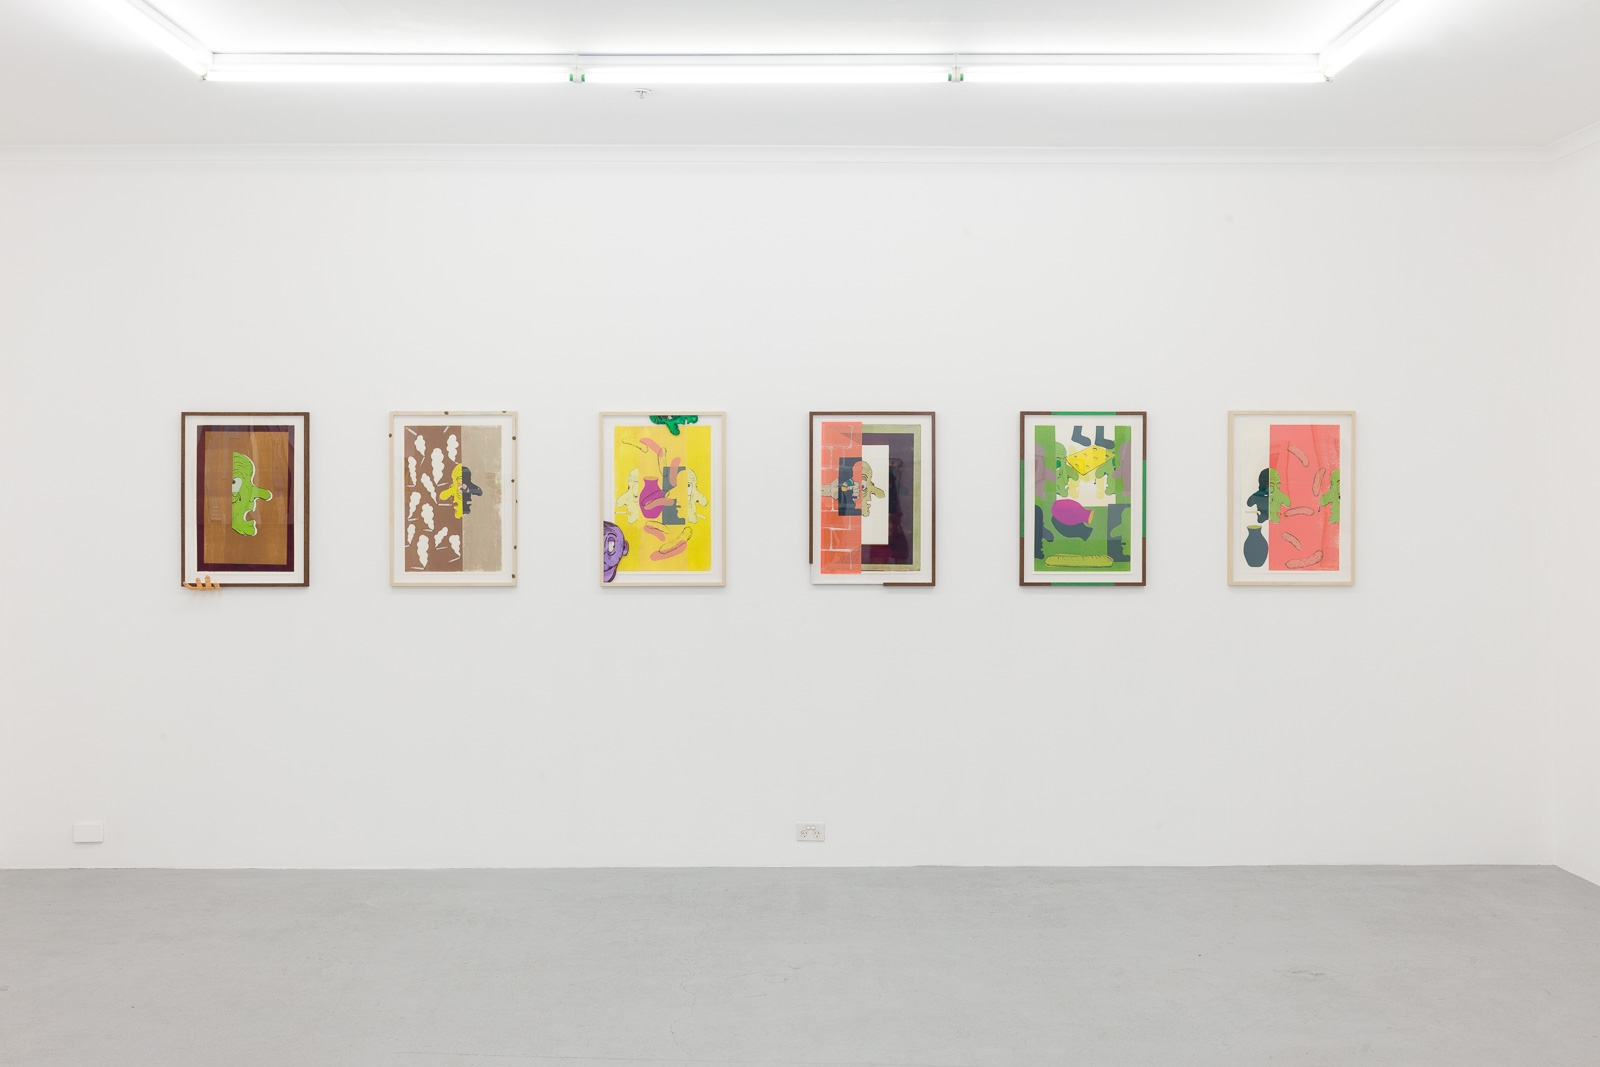 Chris Dolman, installation view image